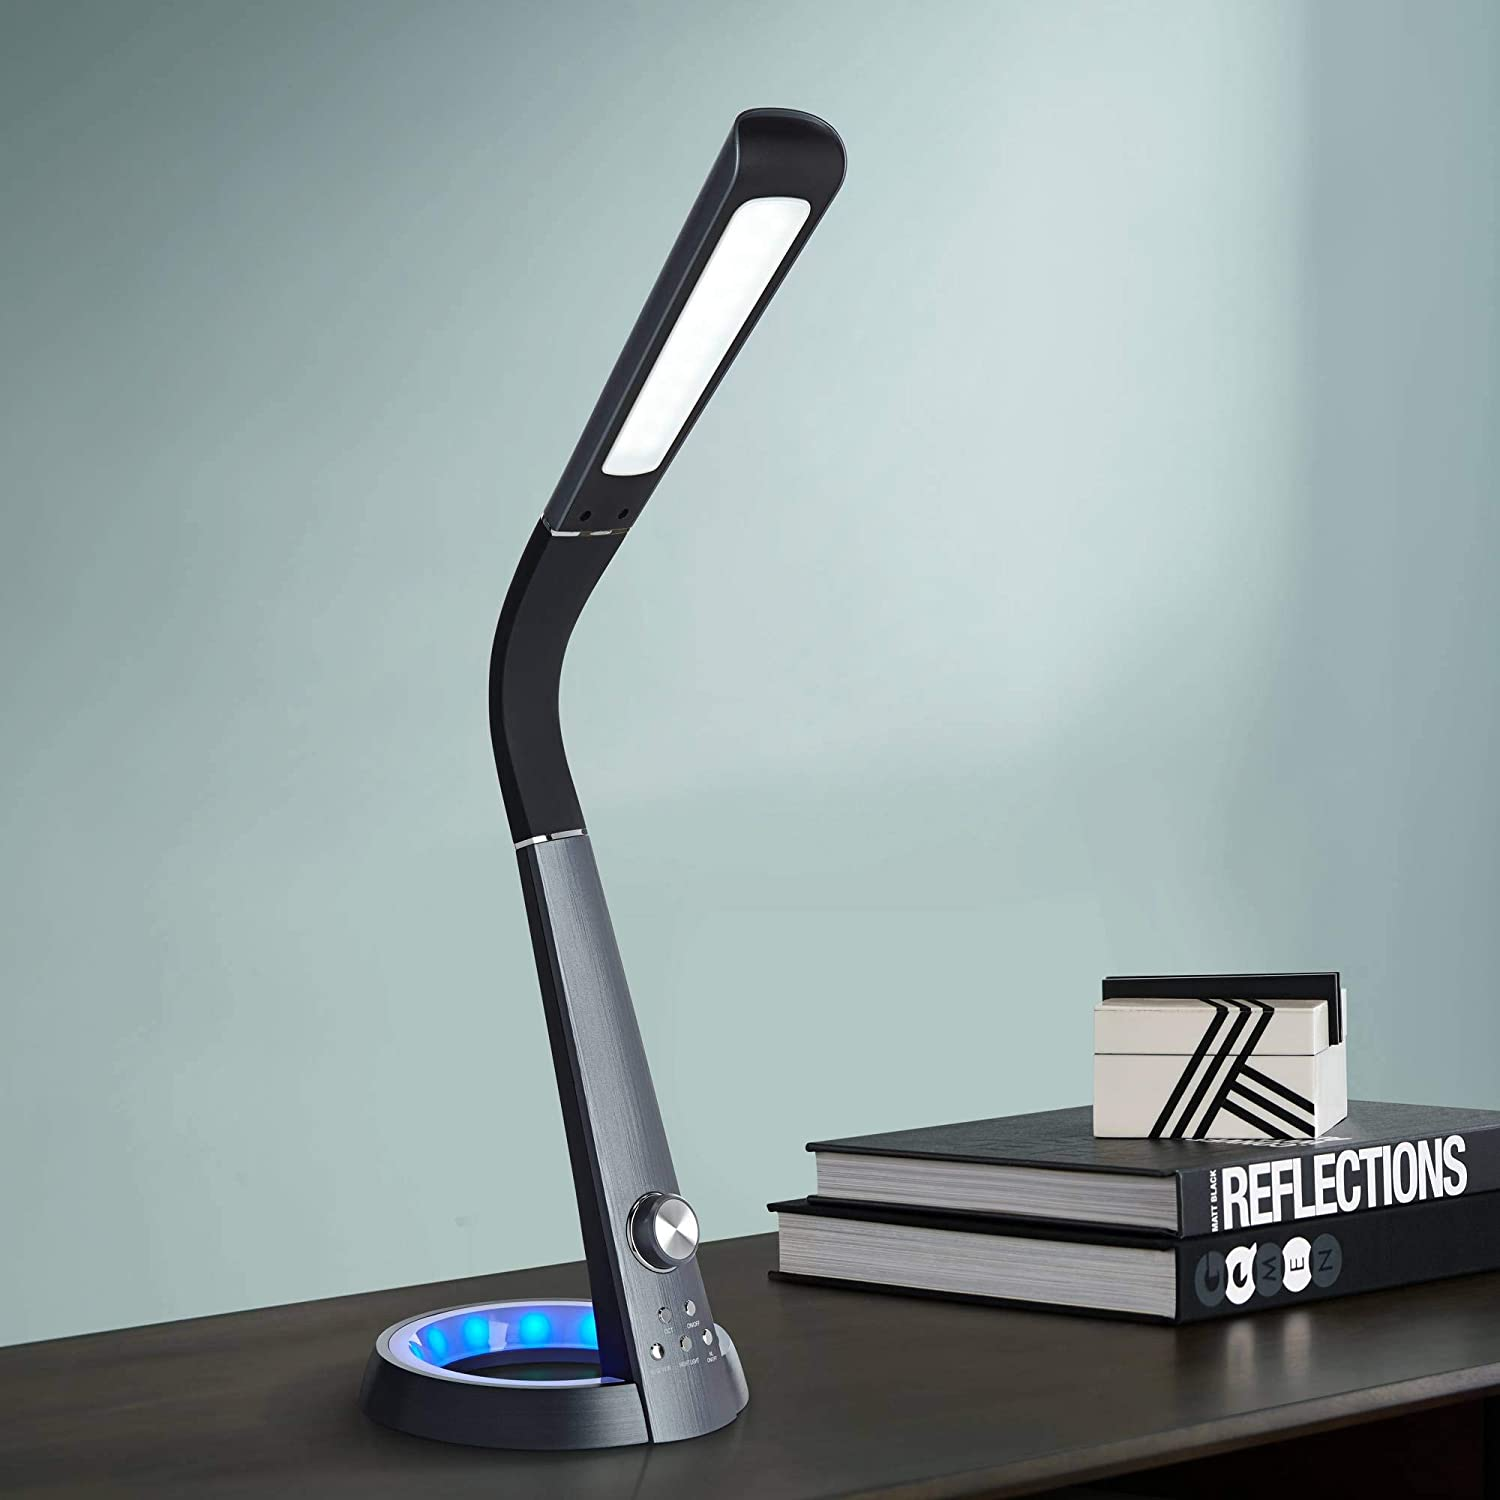 Keno Modern Desk Table Lamp with USB Charging Port and Color Changing Nightlight LED Touch On Off Adjustable Head Black for Bedroom Bedside Nightstand Office Family - 360 Lighting